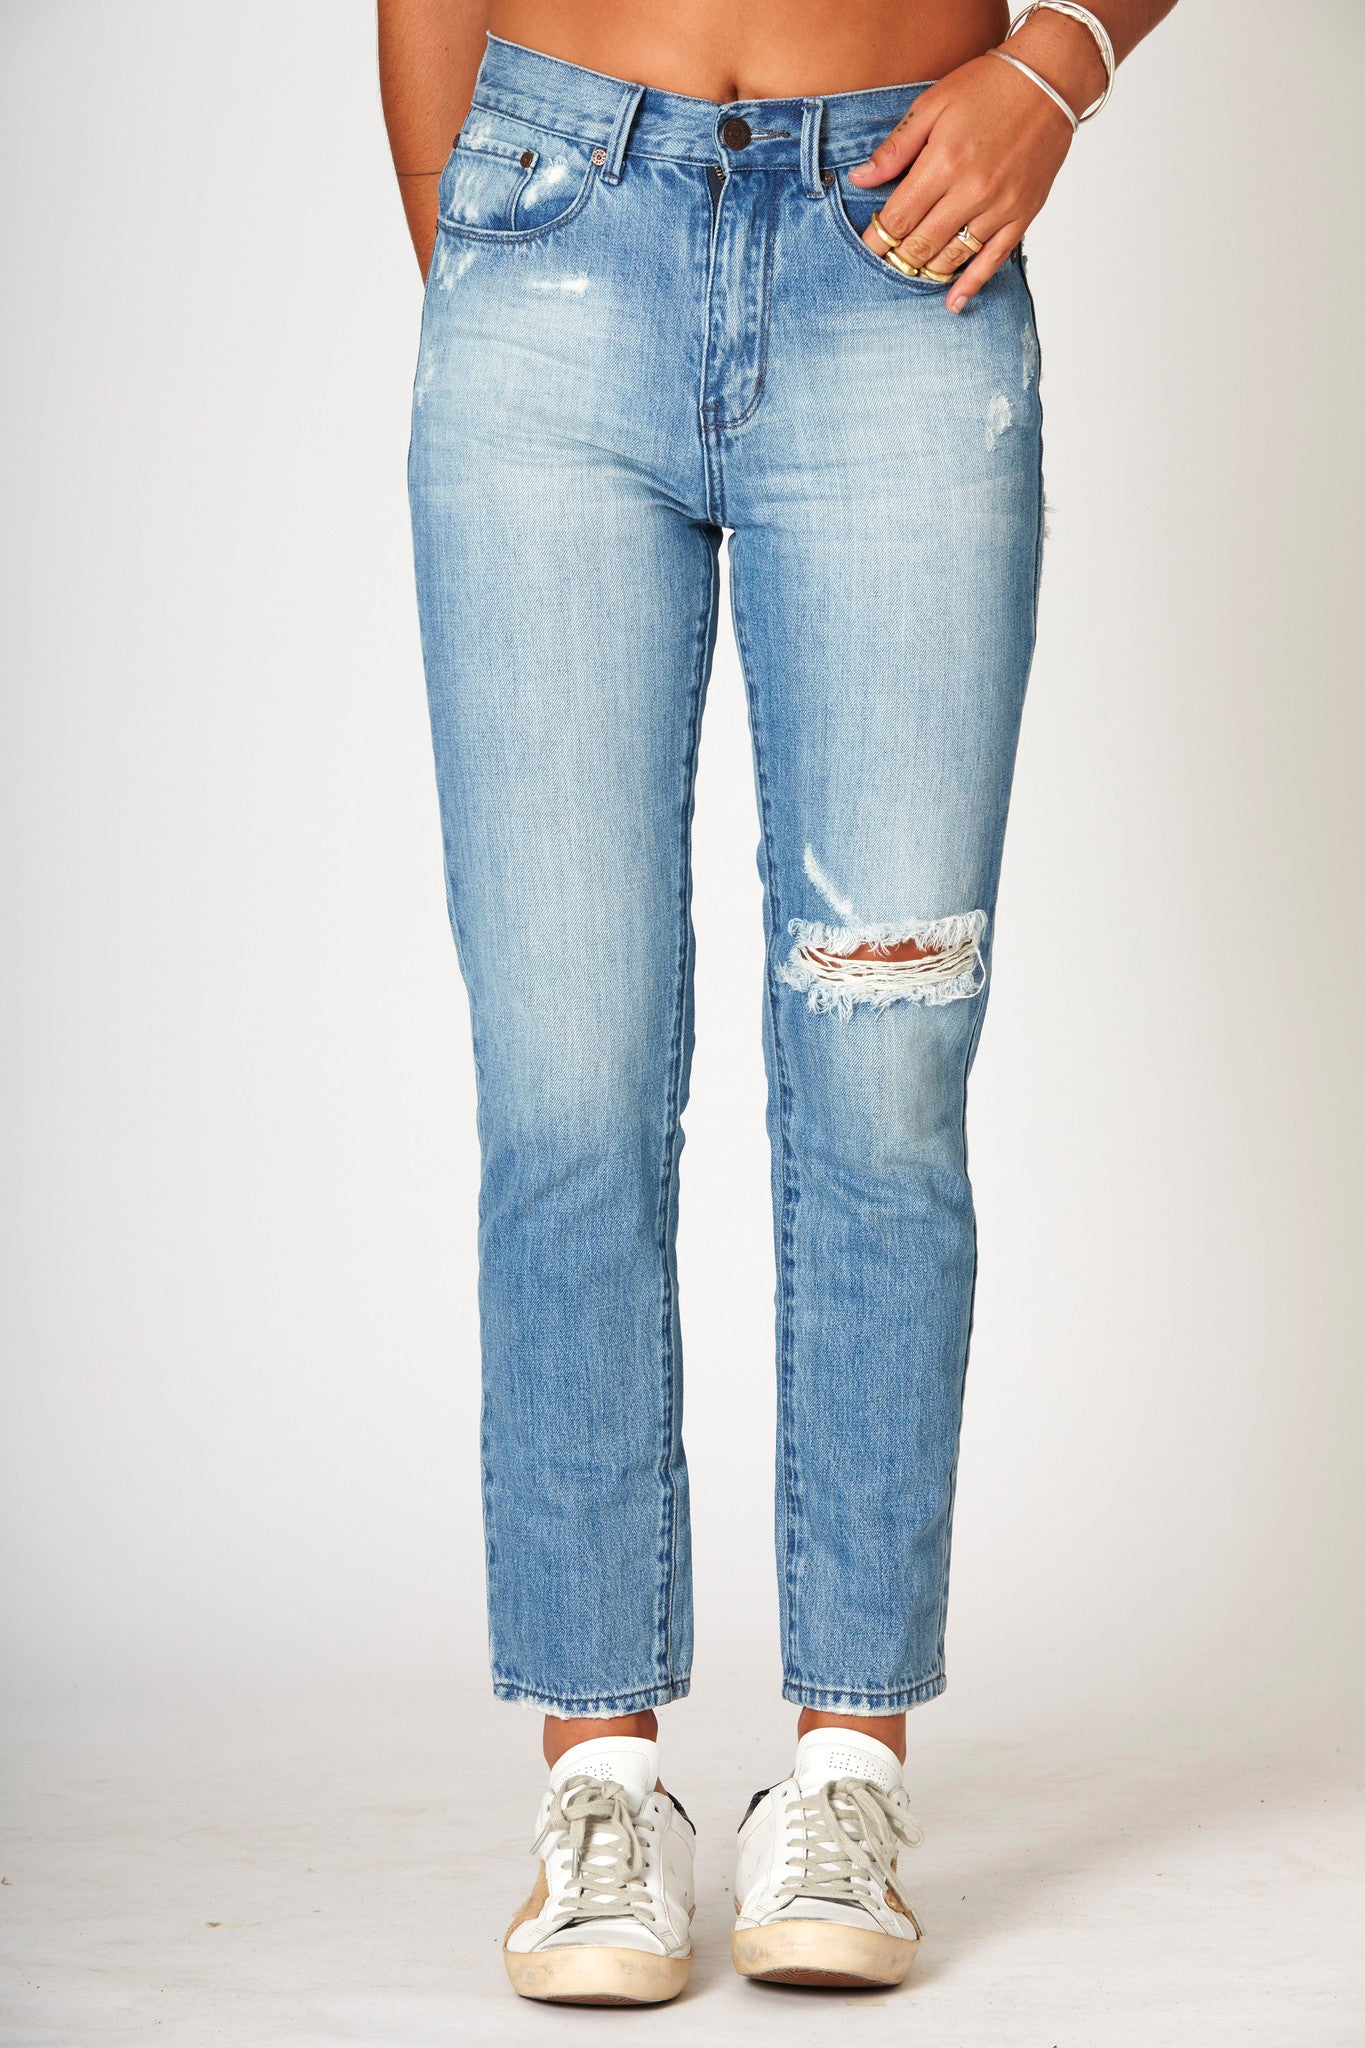 #3A33 Mid Slim Ankle Moon Blue - denimcolab